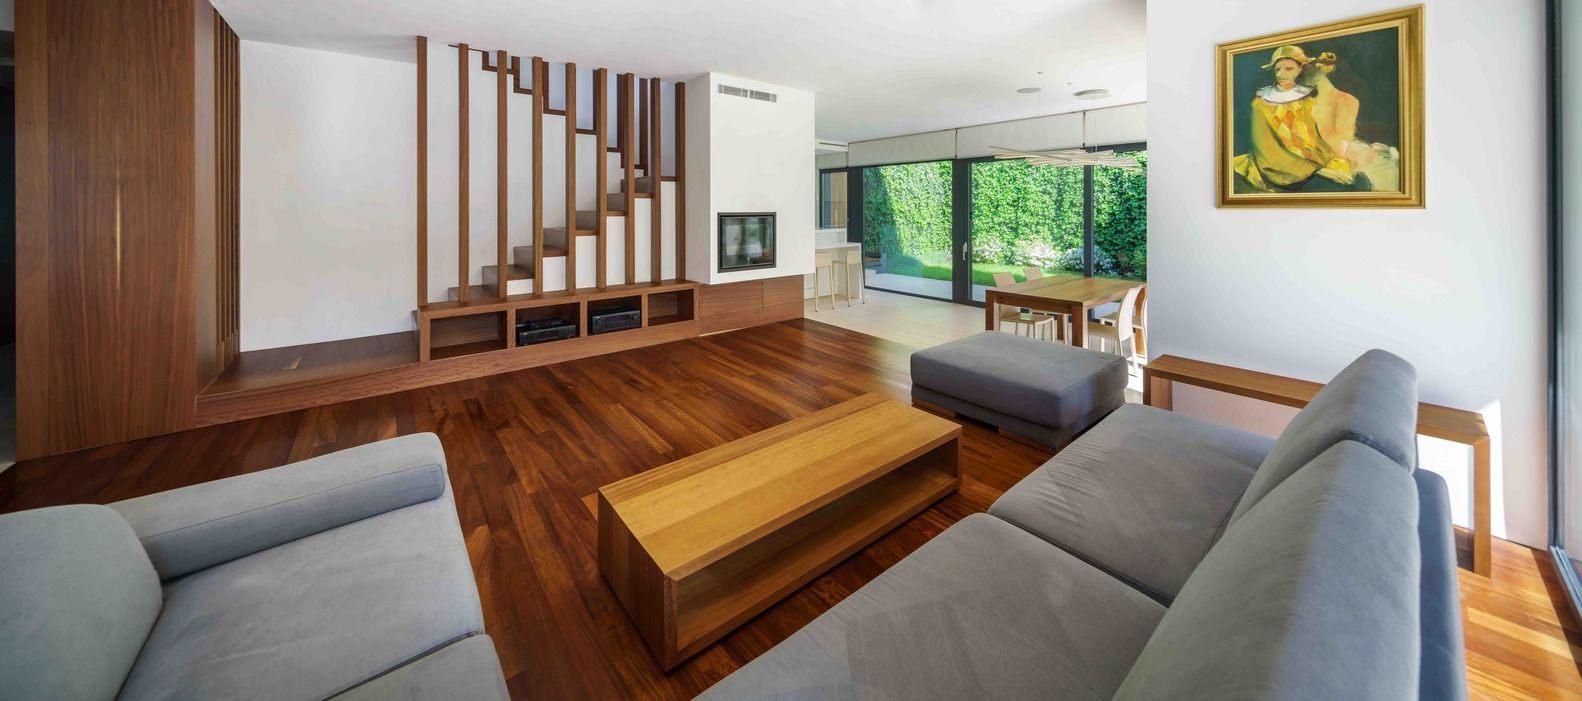 Gallery Of Racovita House Corina Dindareanu 11 House  # Muebles Kay Canals